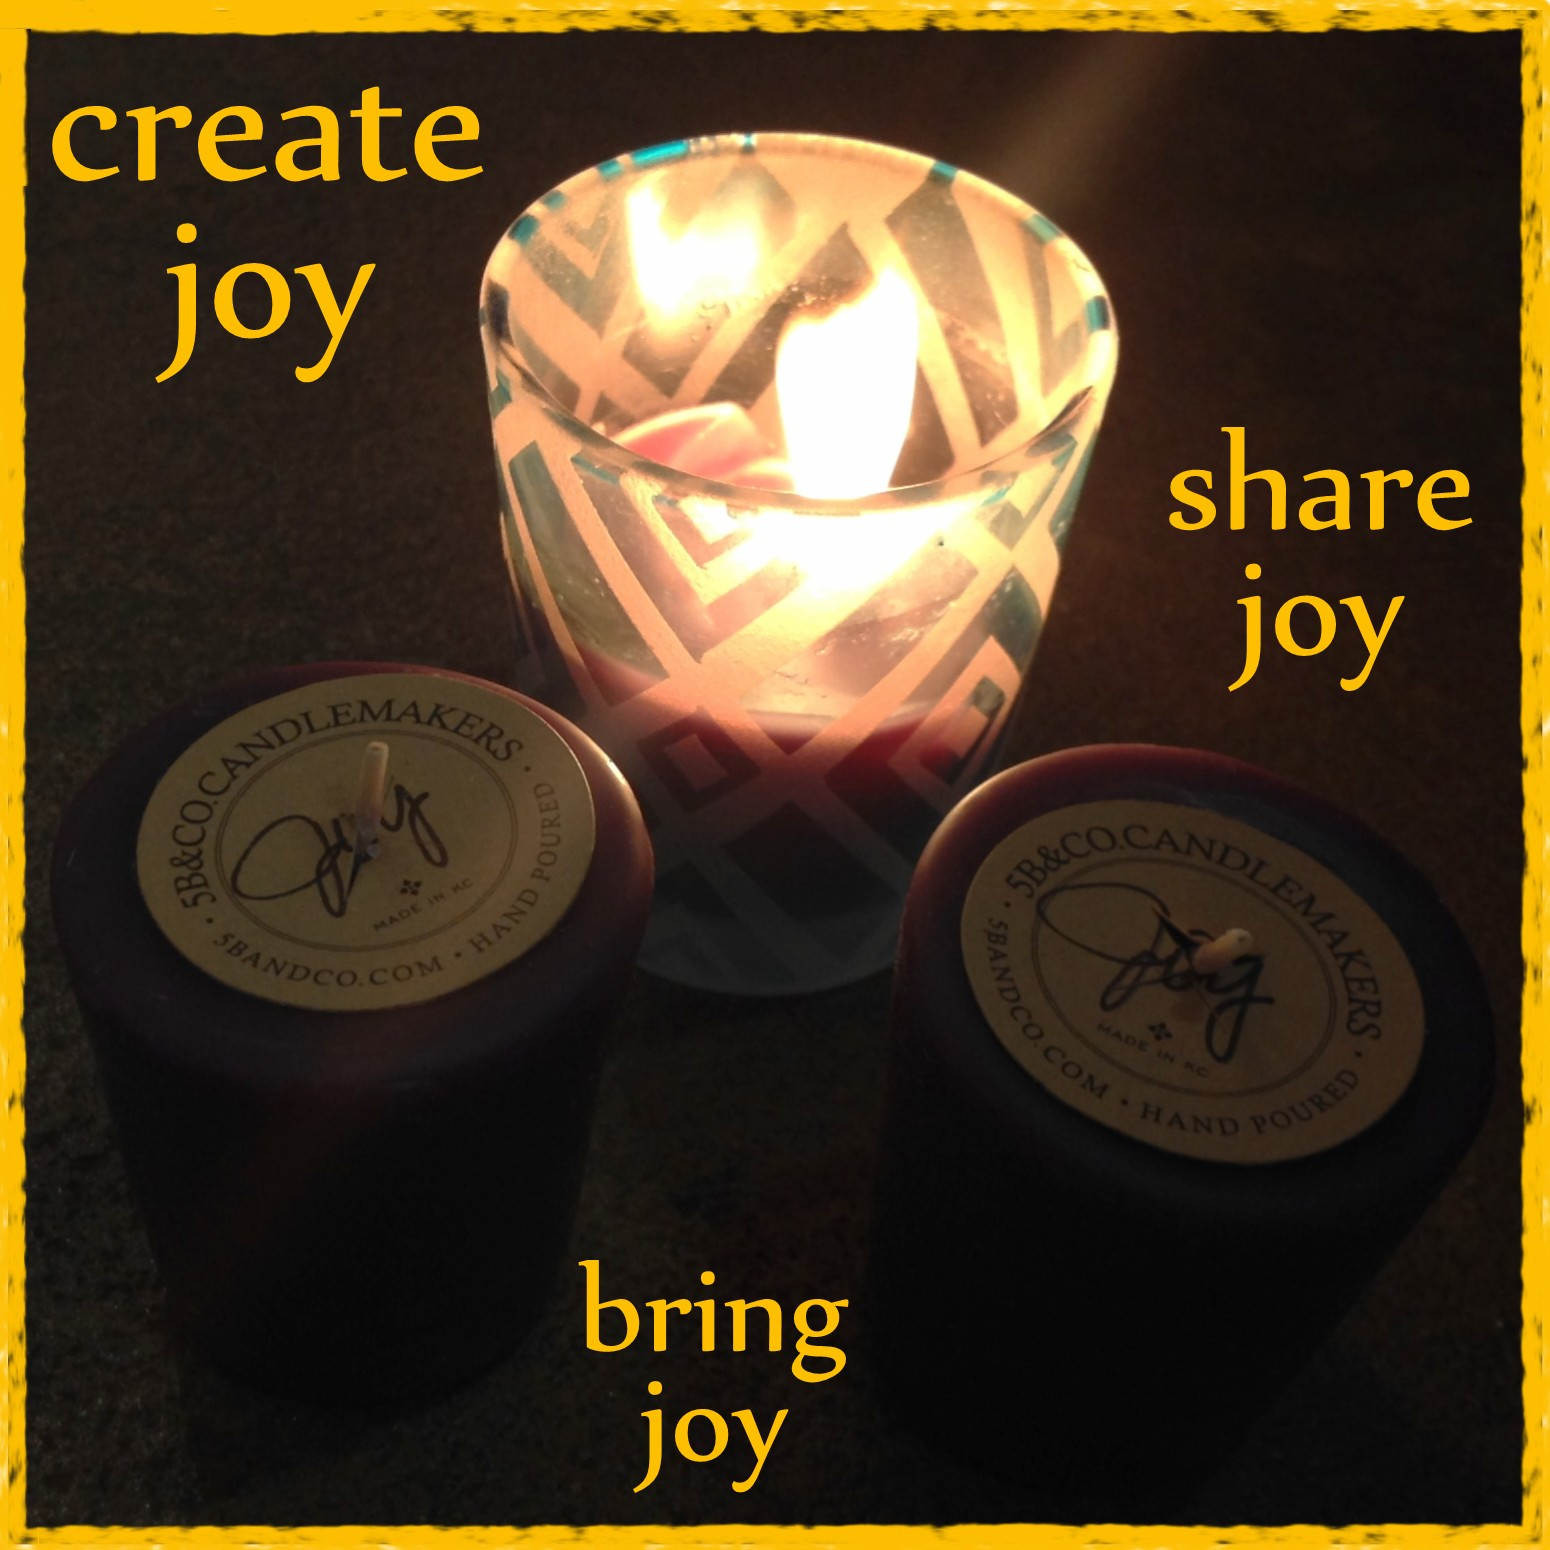 Joy Candles at World's Window custom scented and made by 5B@Co Candlemakers in Kansas City, Missouri